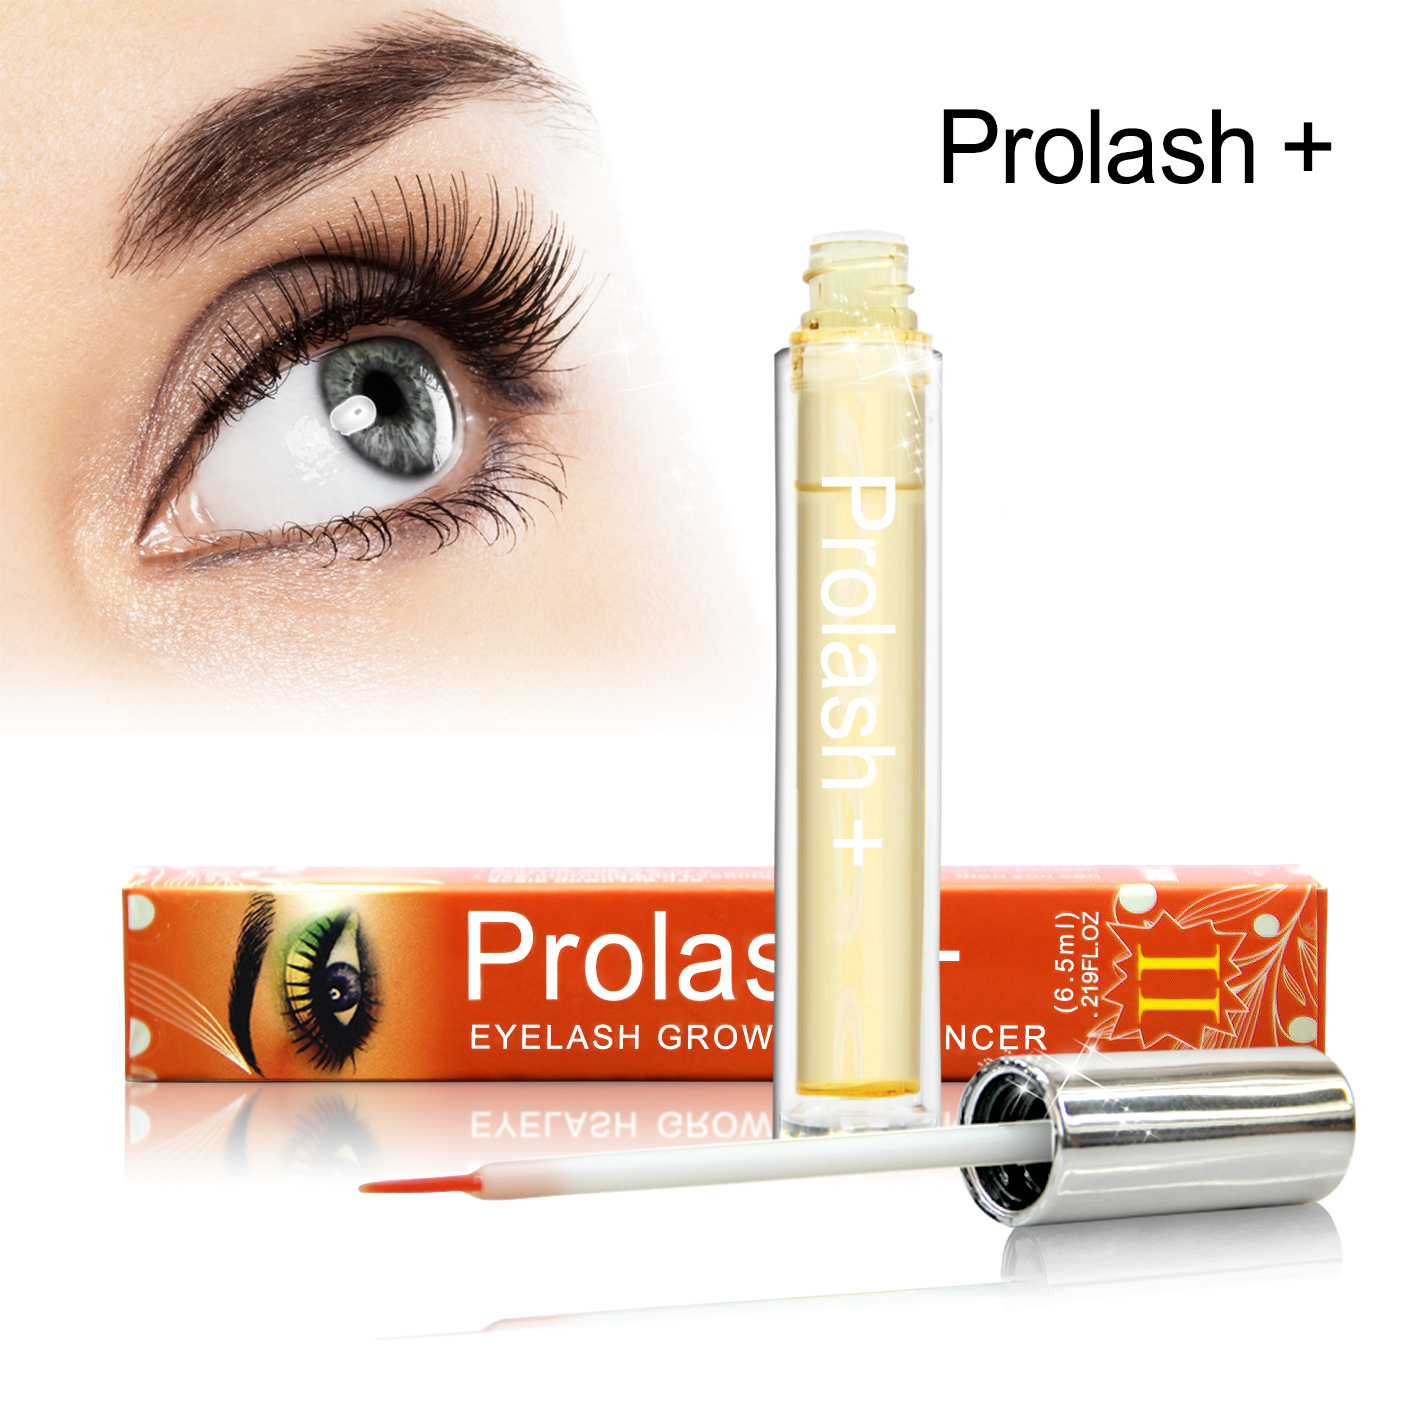 prolash-oejenvippeserum.jpg